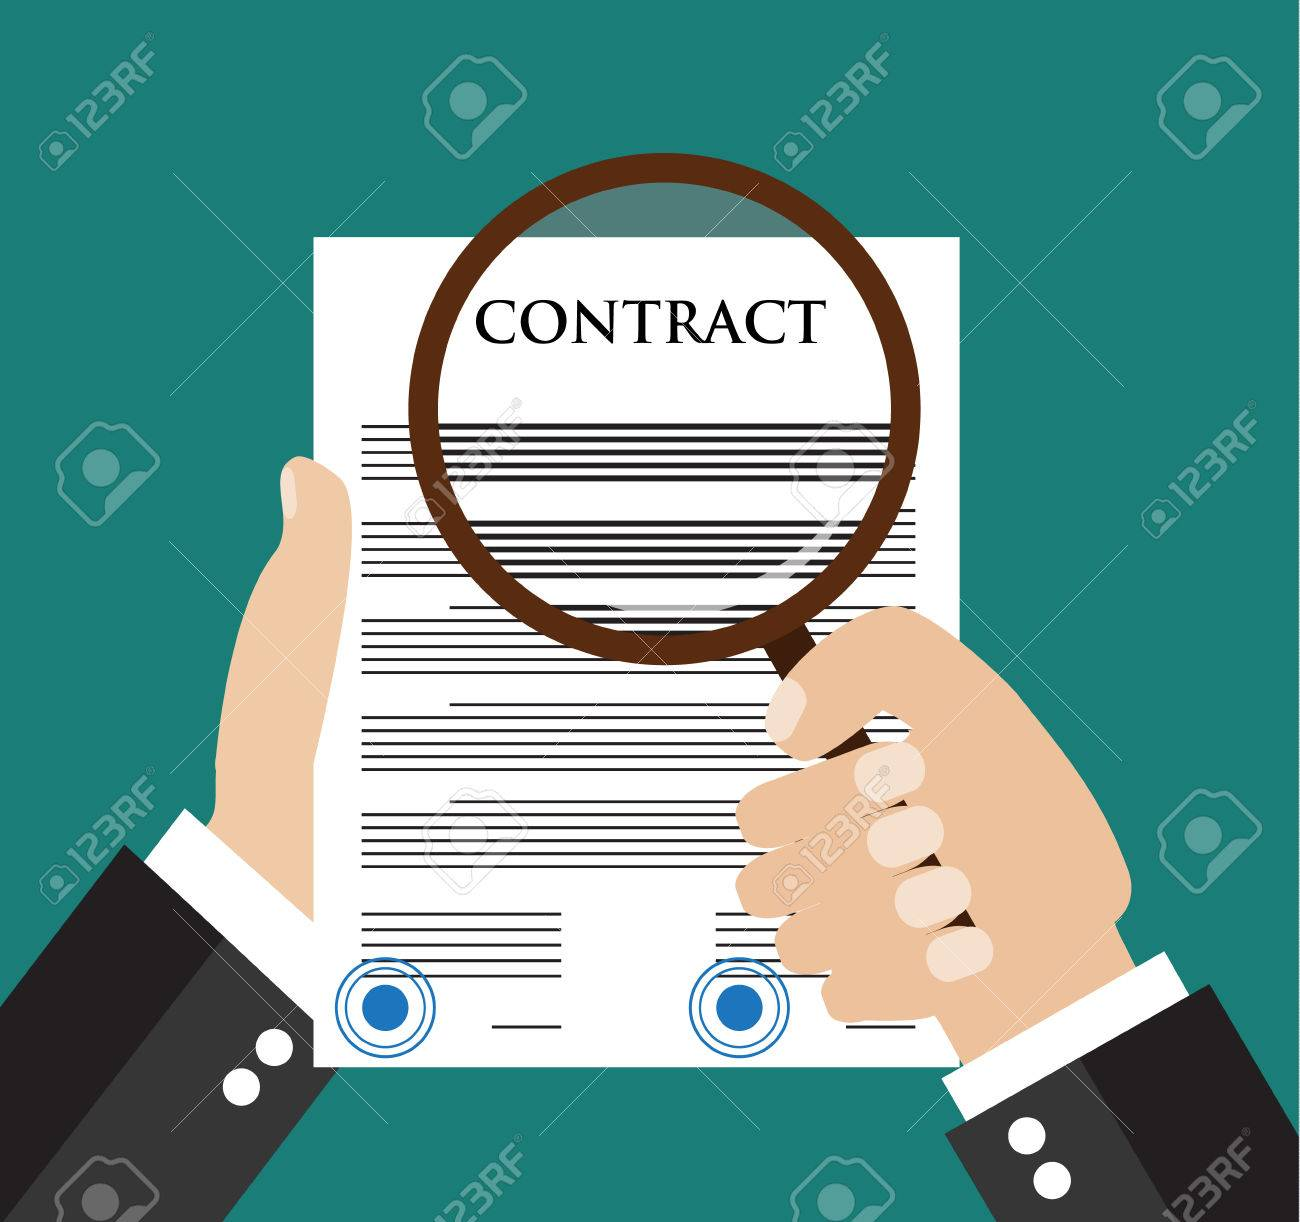 Contract Inspection Concept   Hand Holding Magnifying Glass Over A Contract    Flat Icon Modern Design